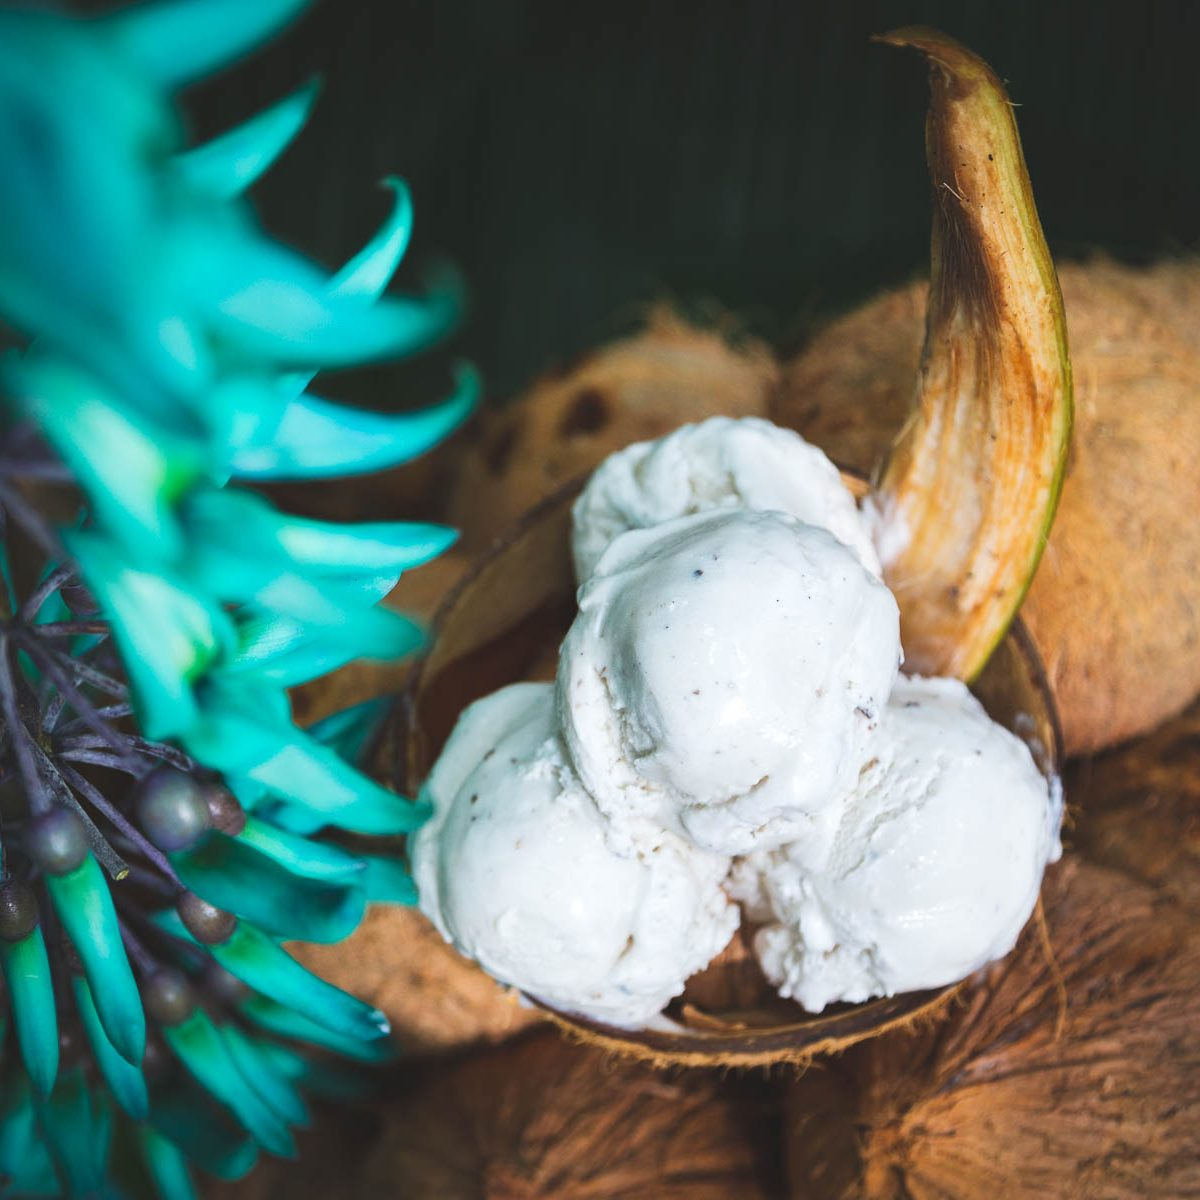 Chelsea-Heller-Photography-Commercial-Photography-Food-Photography-Coconut-Glen-6